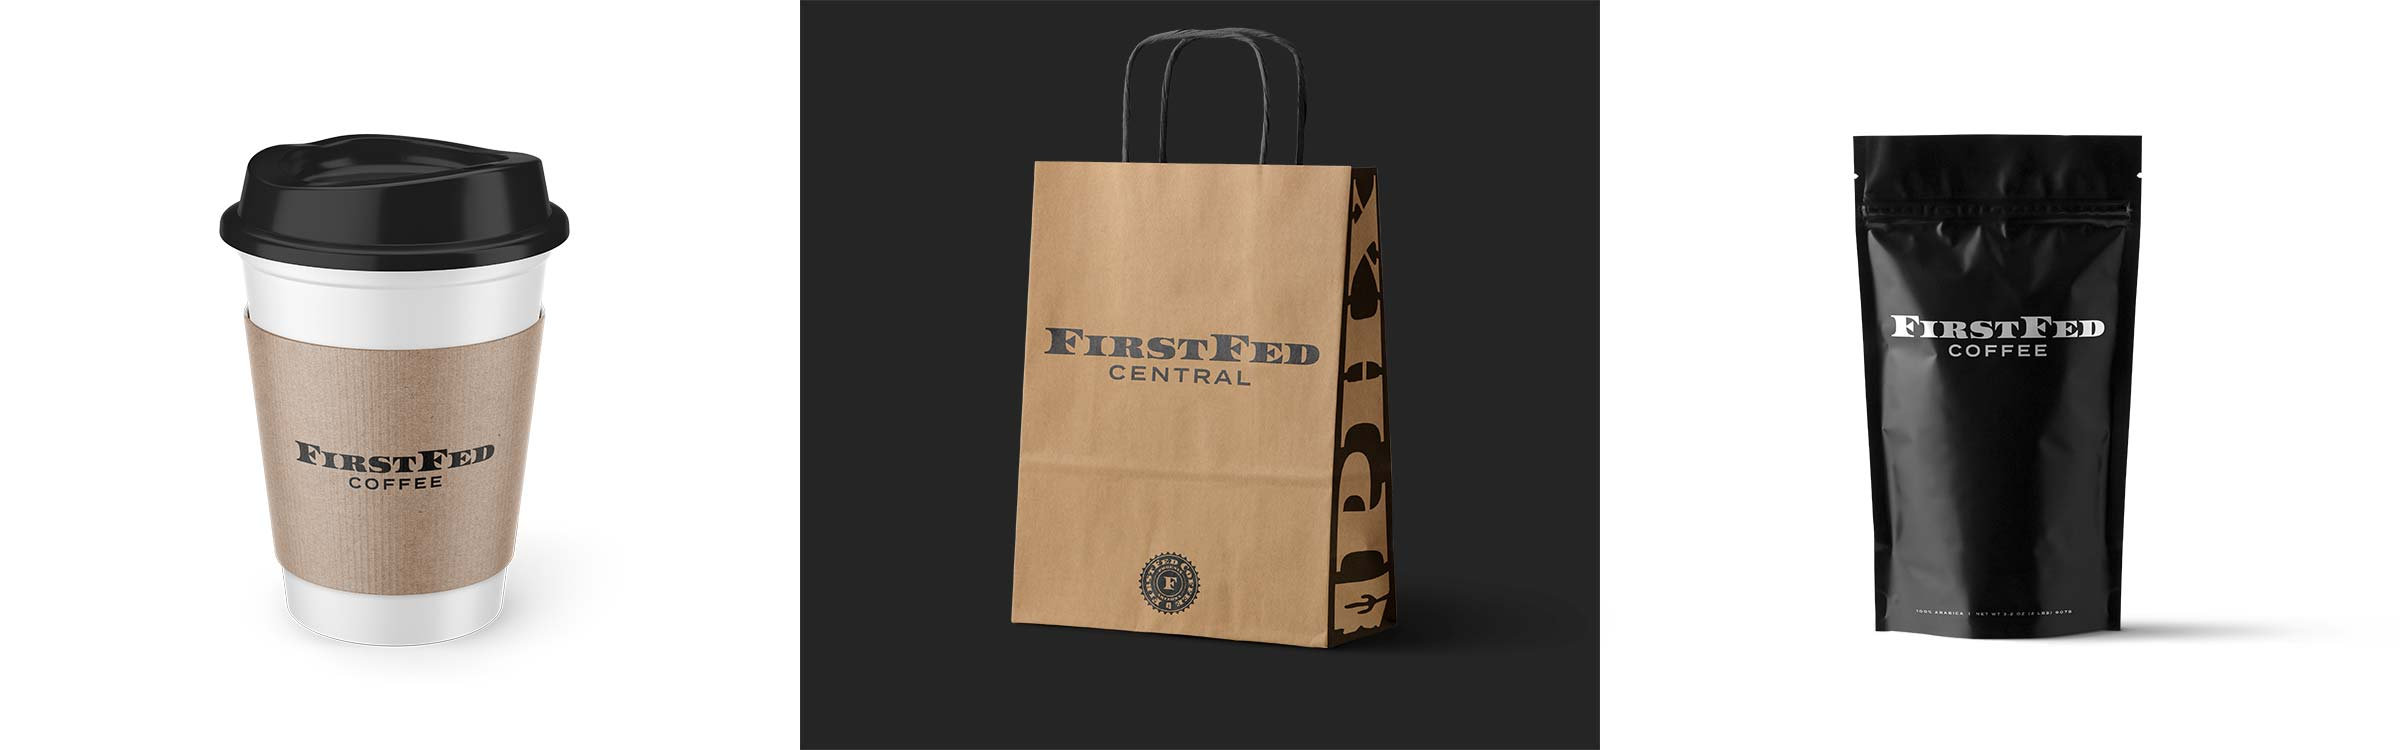 FirstFed Coffee Logo Design 08 branded products